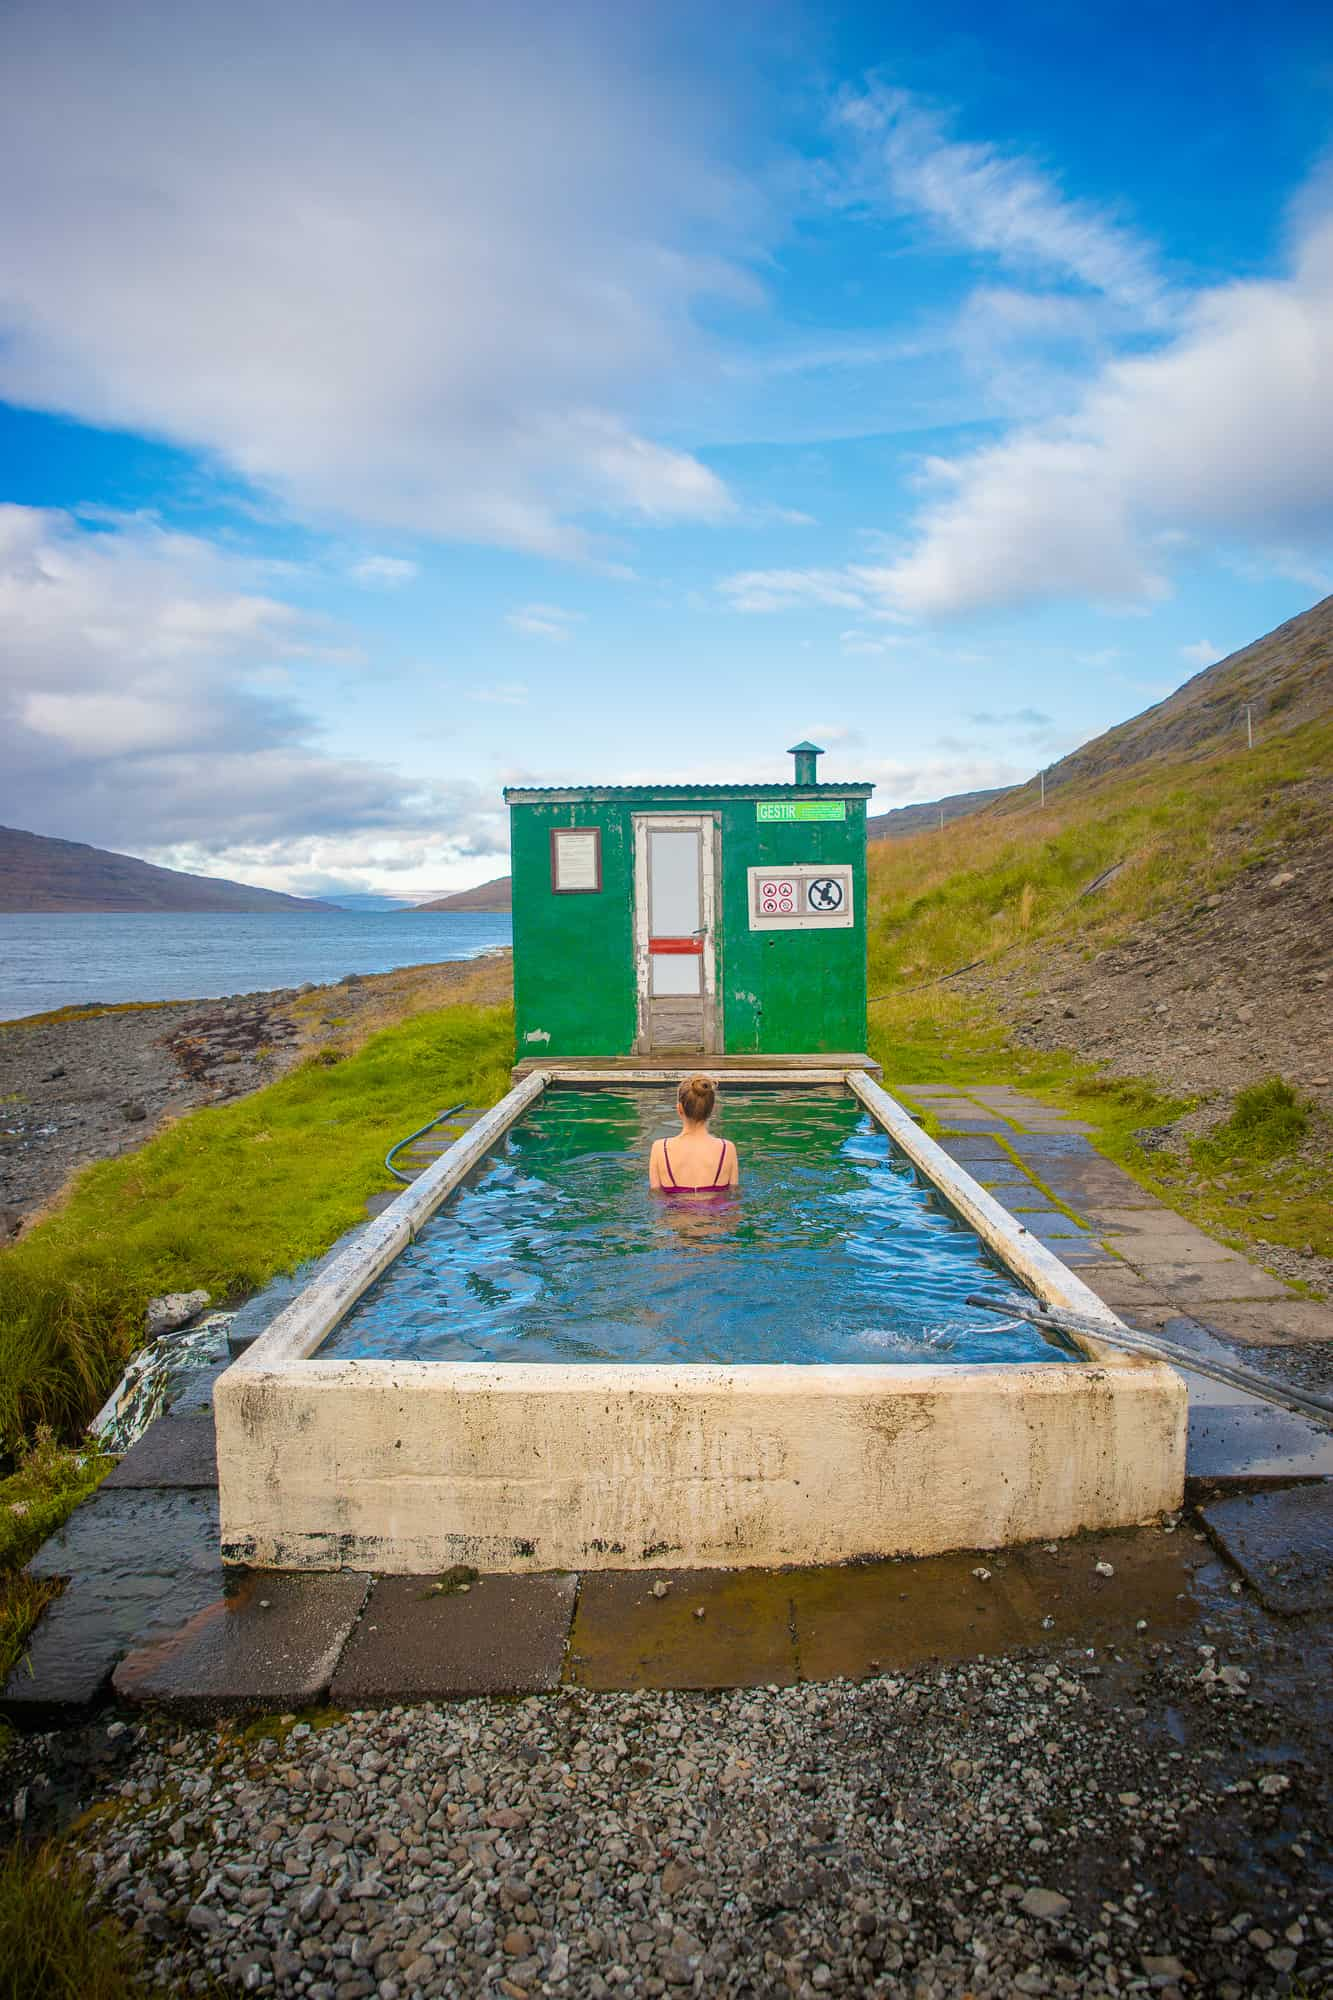 7 Things To Know About Money In Iceland | You only need cash currency in Iceland for hot springs entrance and bathrooms